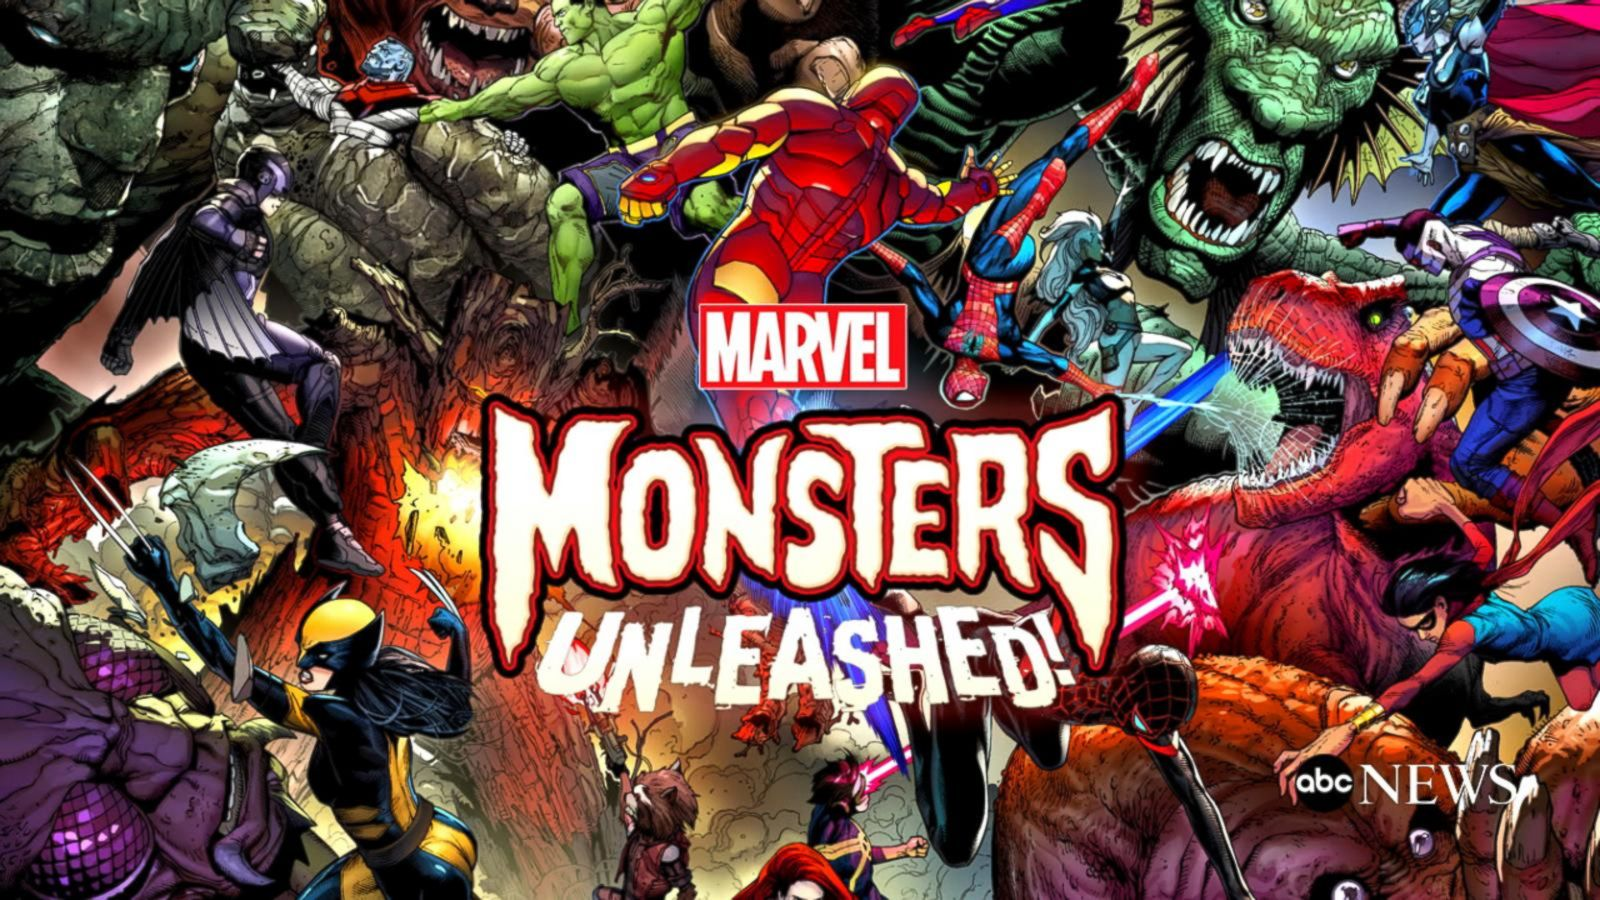 VIDEO: Coming Up Next Year from Marvel Comics